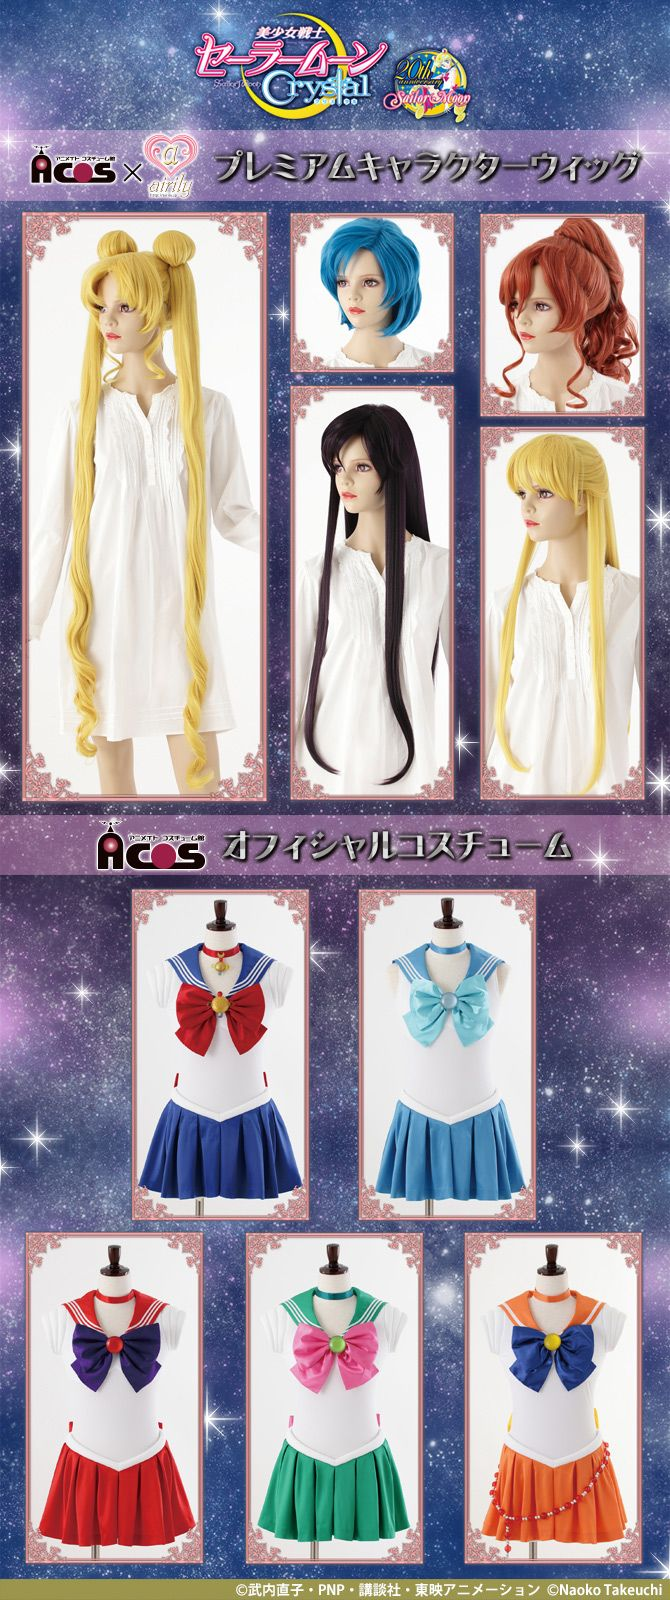 Sailor Moon Crystal character wigs and official costumes